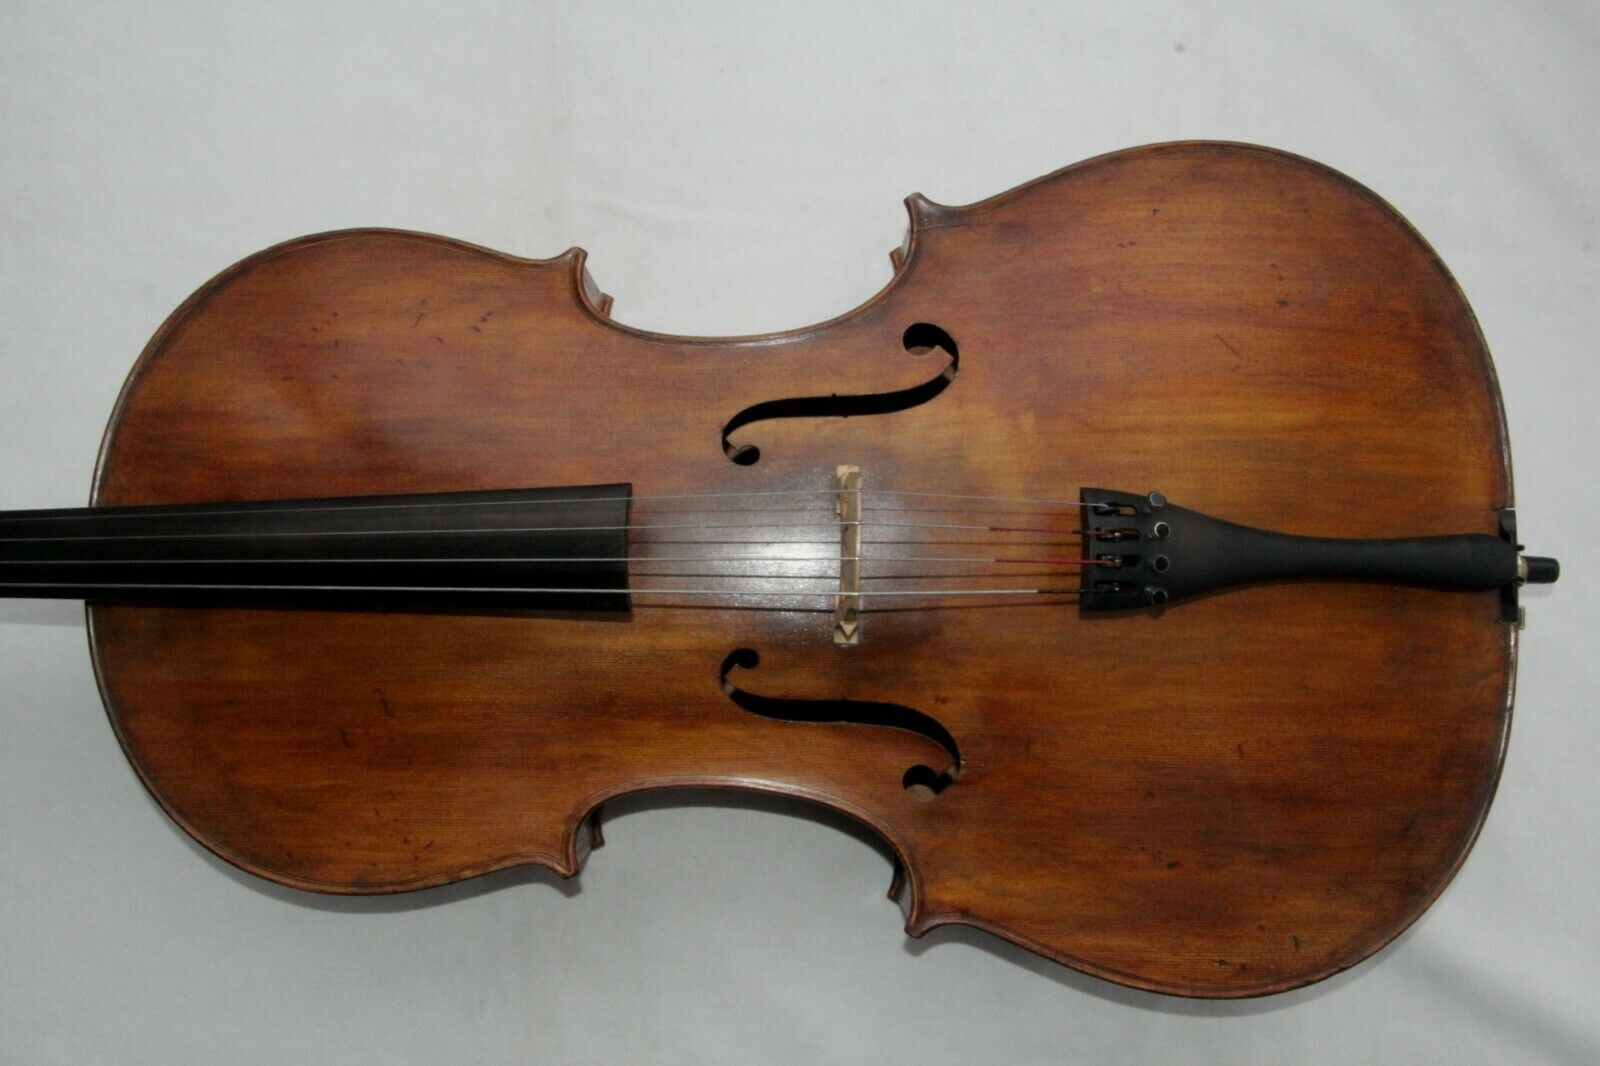 Vintage 1905 French Cello By Paul Bailly 4/4 - $3,160.00